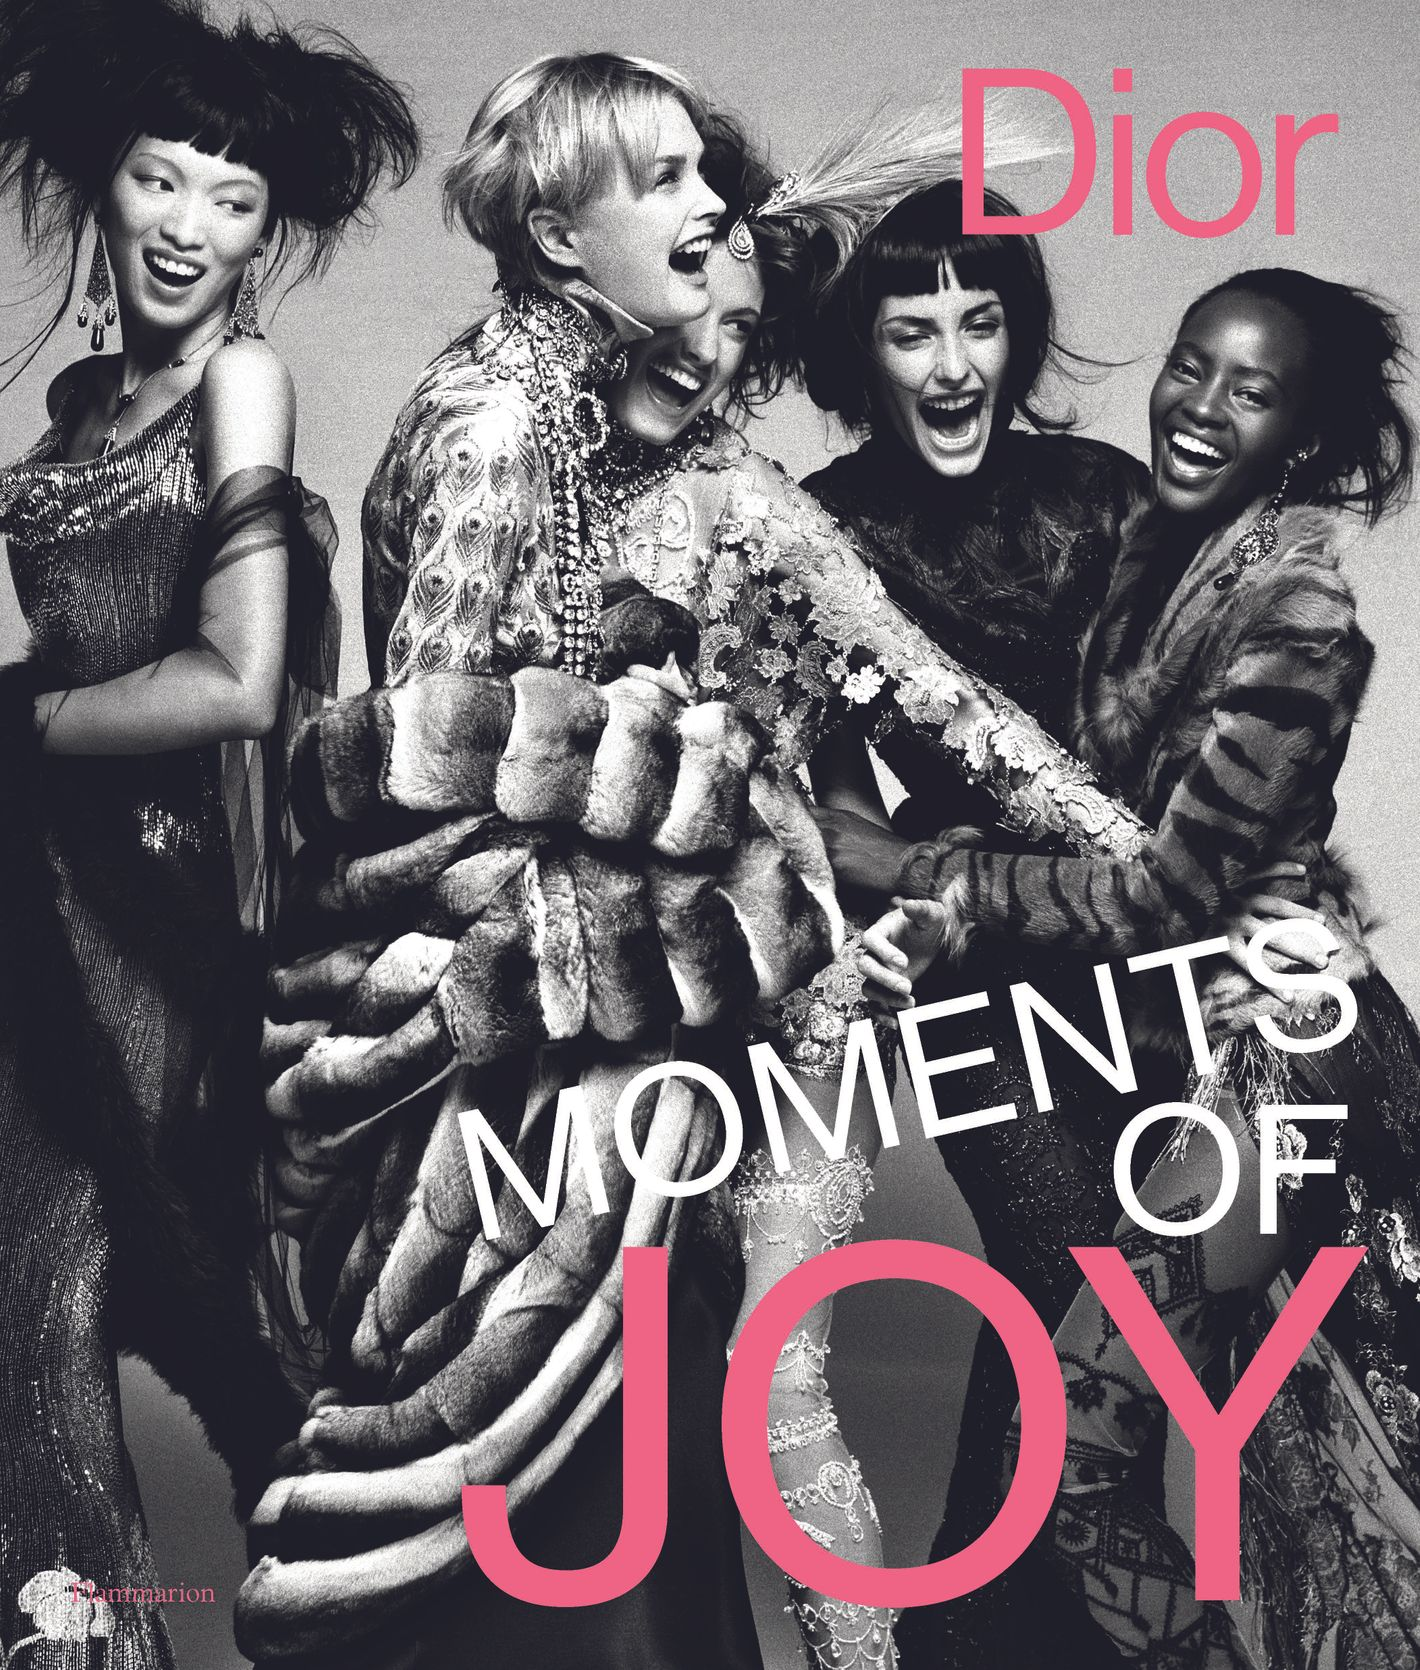 A Reminder From Dior: Fashion Should Be Fun